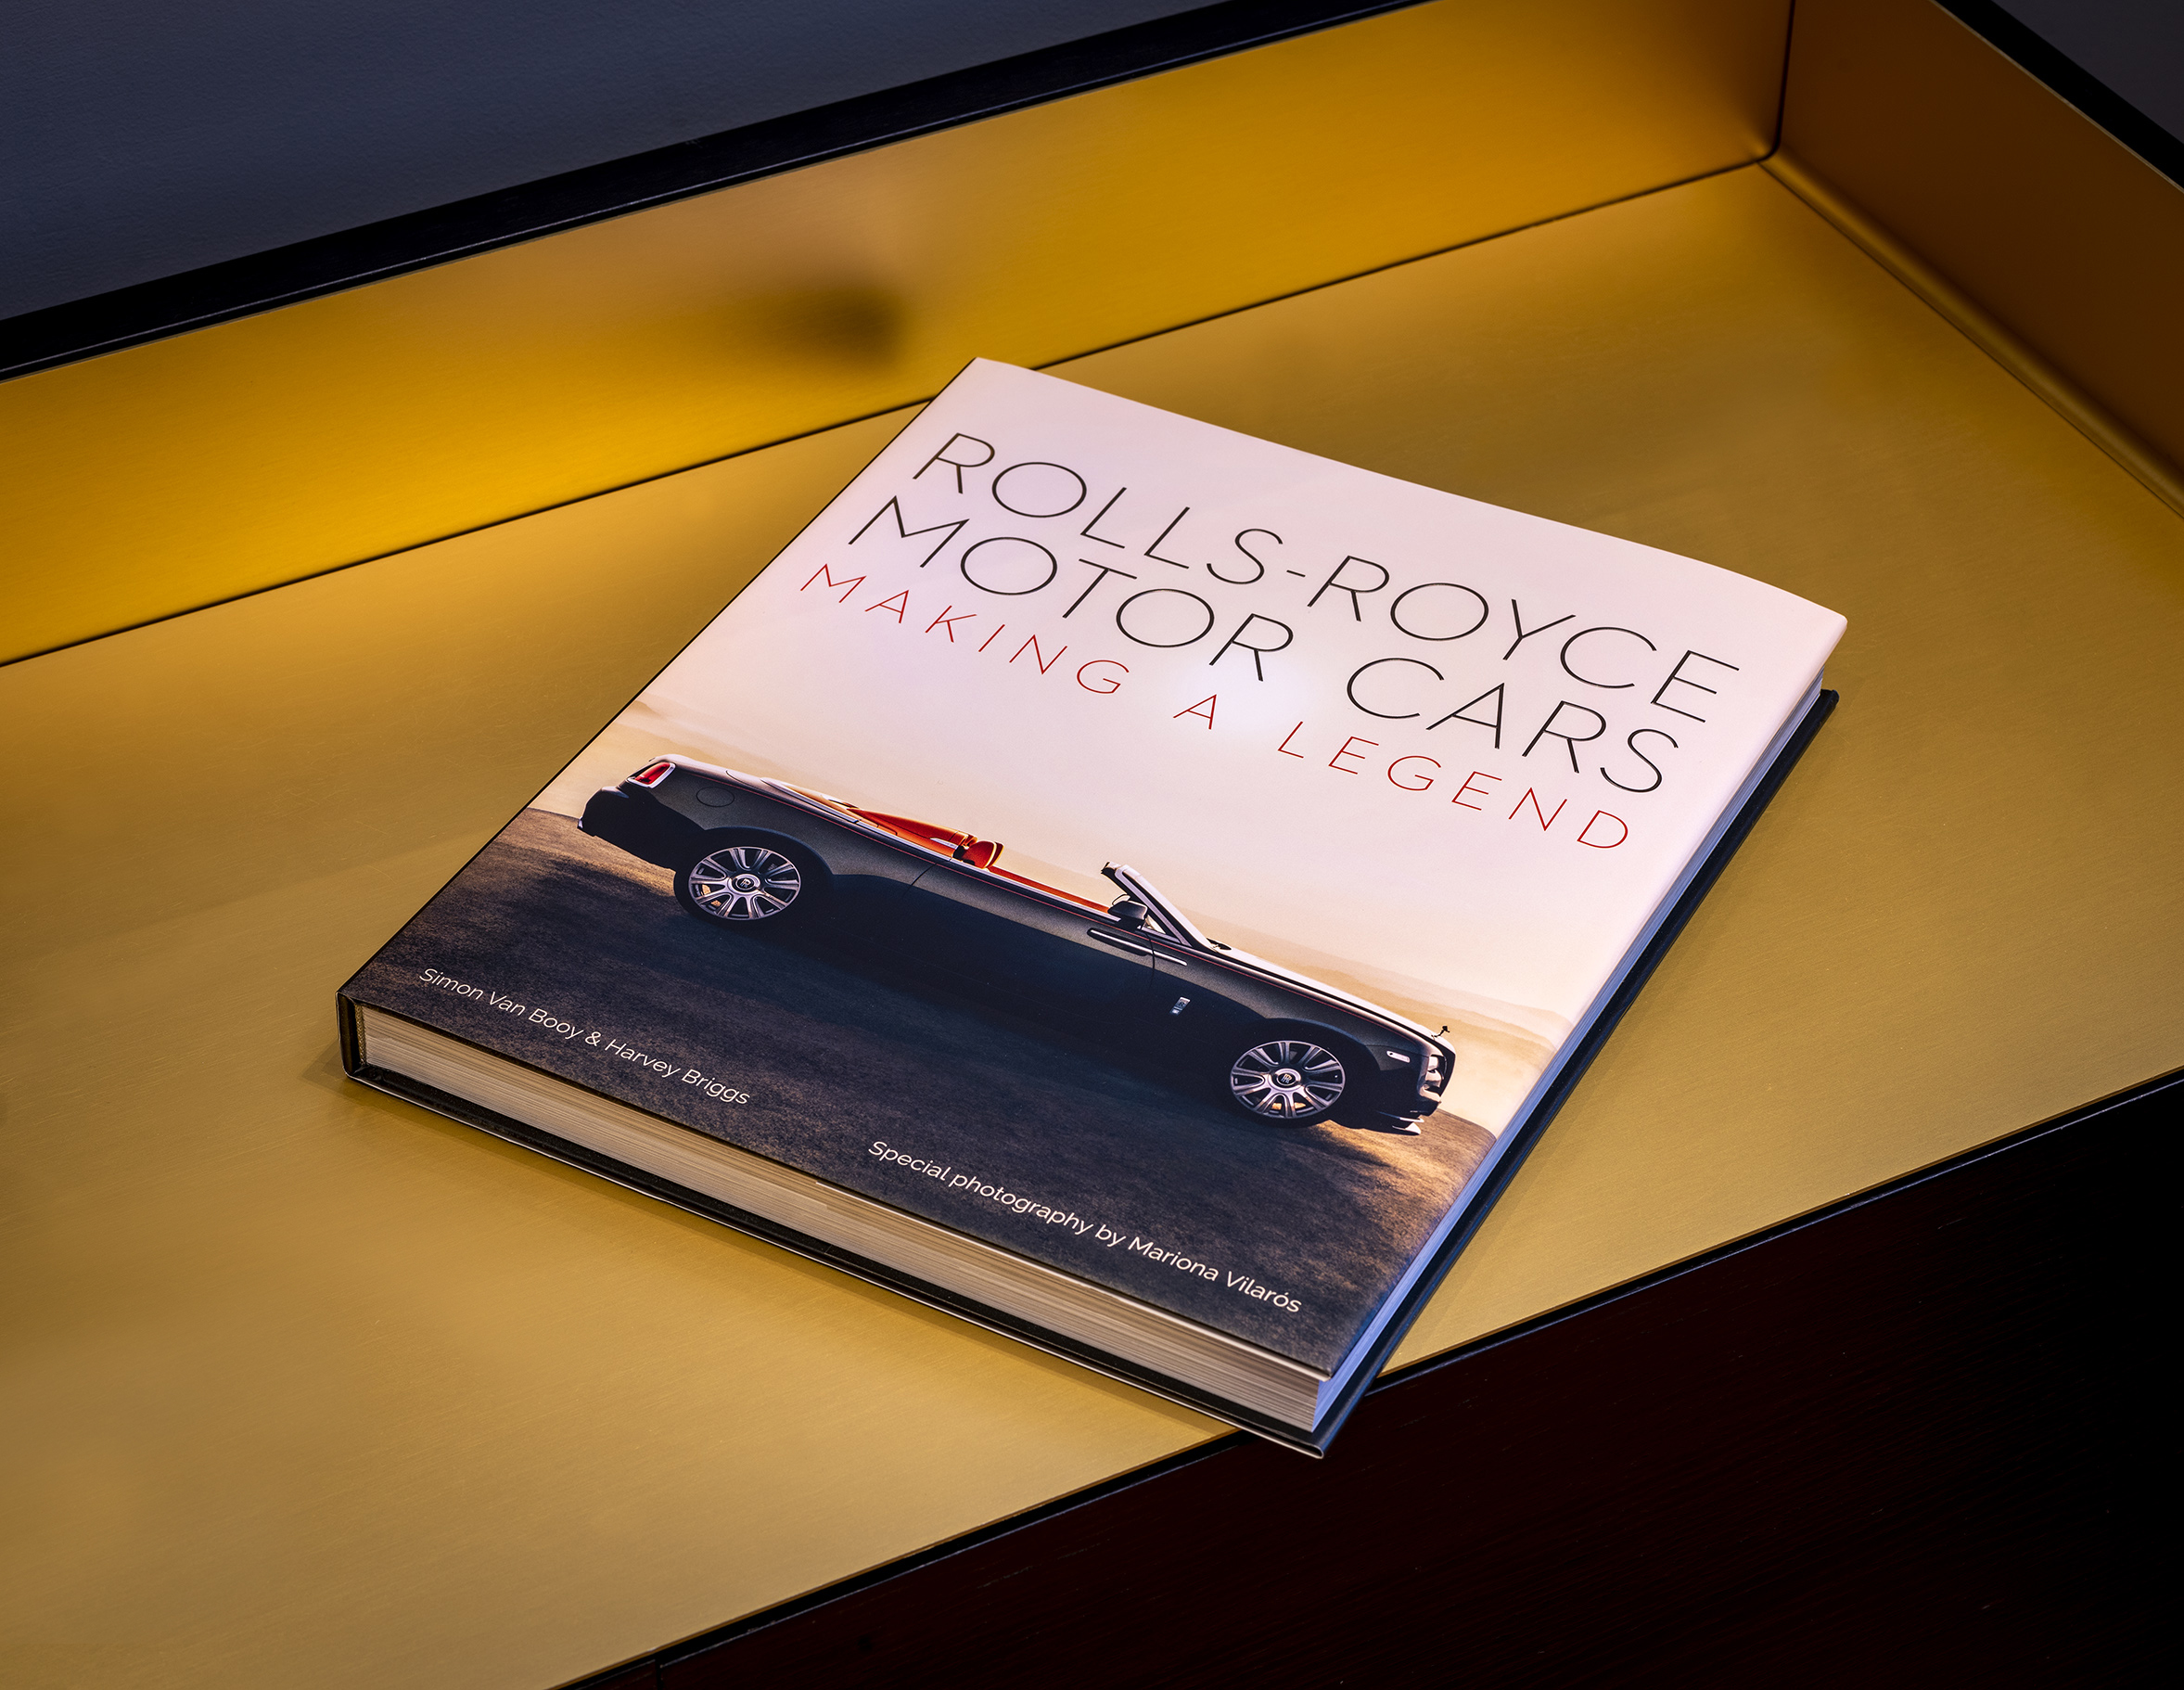 rolls royce, goodwood, sussex, unesco world book day, helen siwak, folioyvr, ecoluxluv, vancouver, bc, vancity, yvr